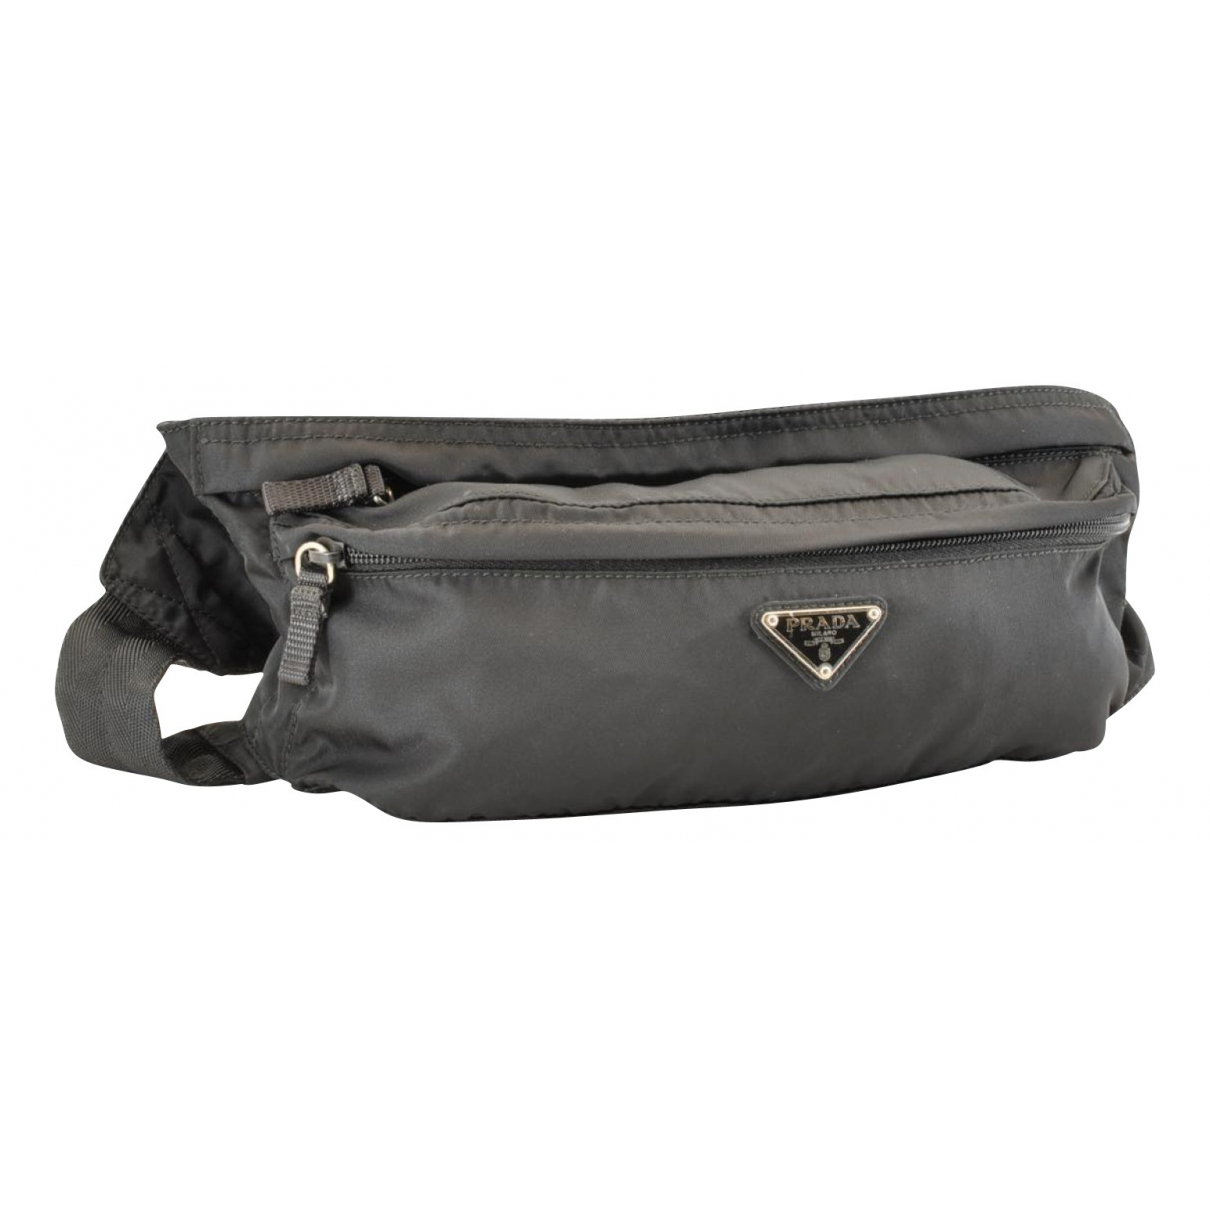 Prada N Black Clutch bag for Women N